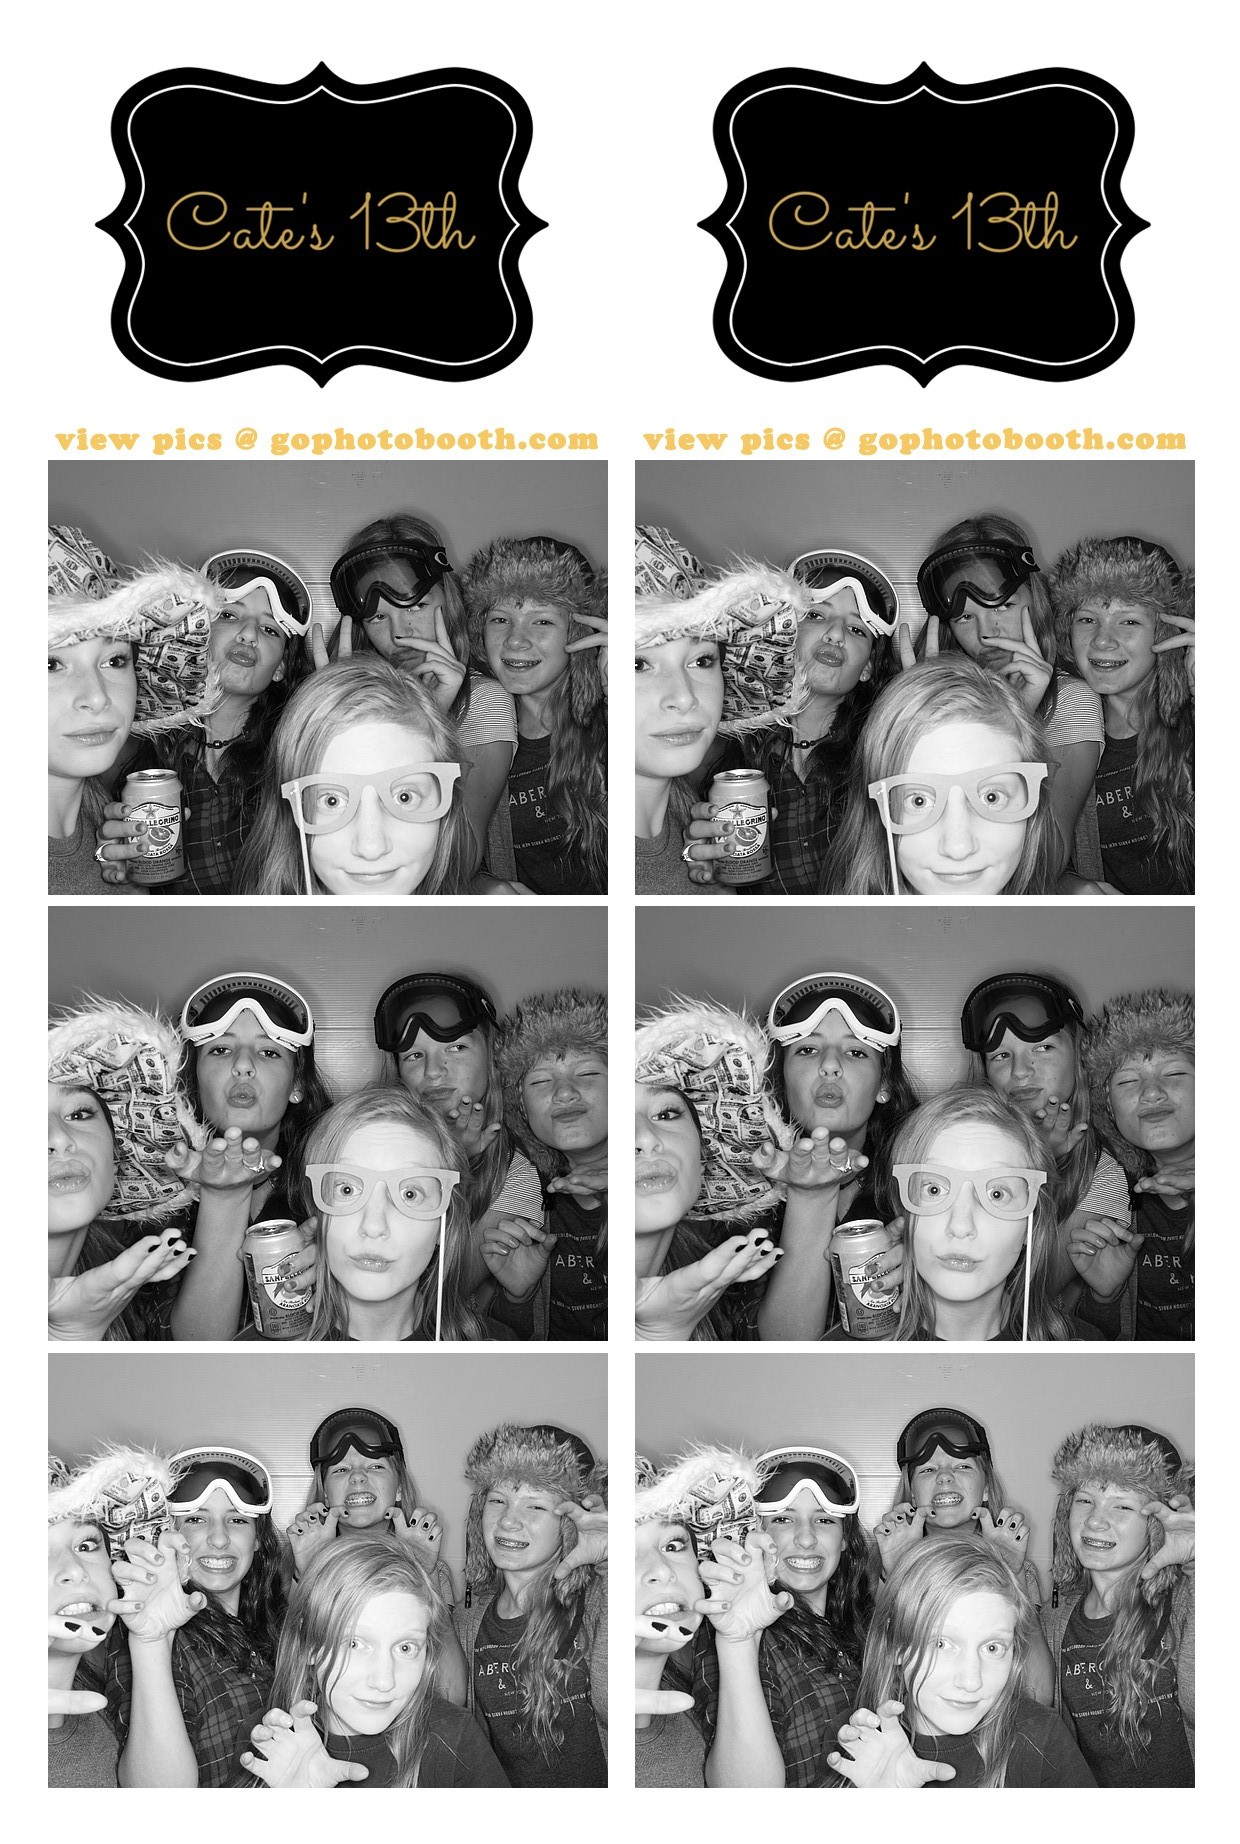 Cate's 13th Birthday Party Photo Booth Aspen 11/14/15